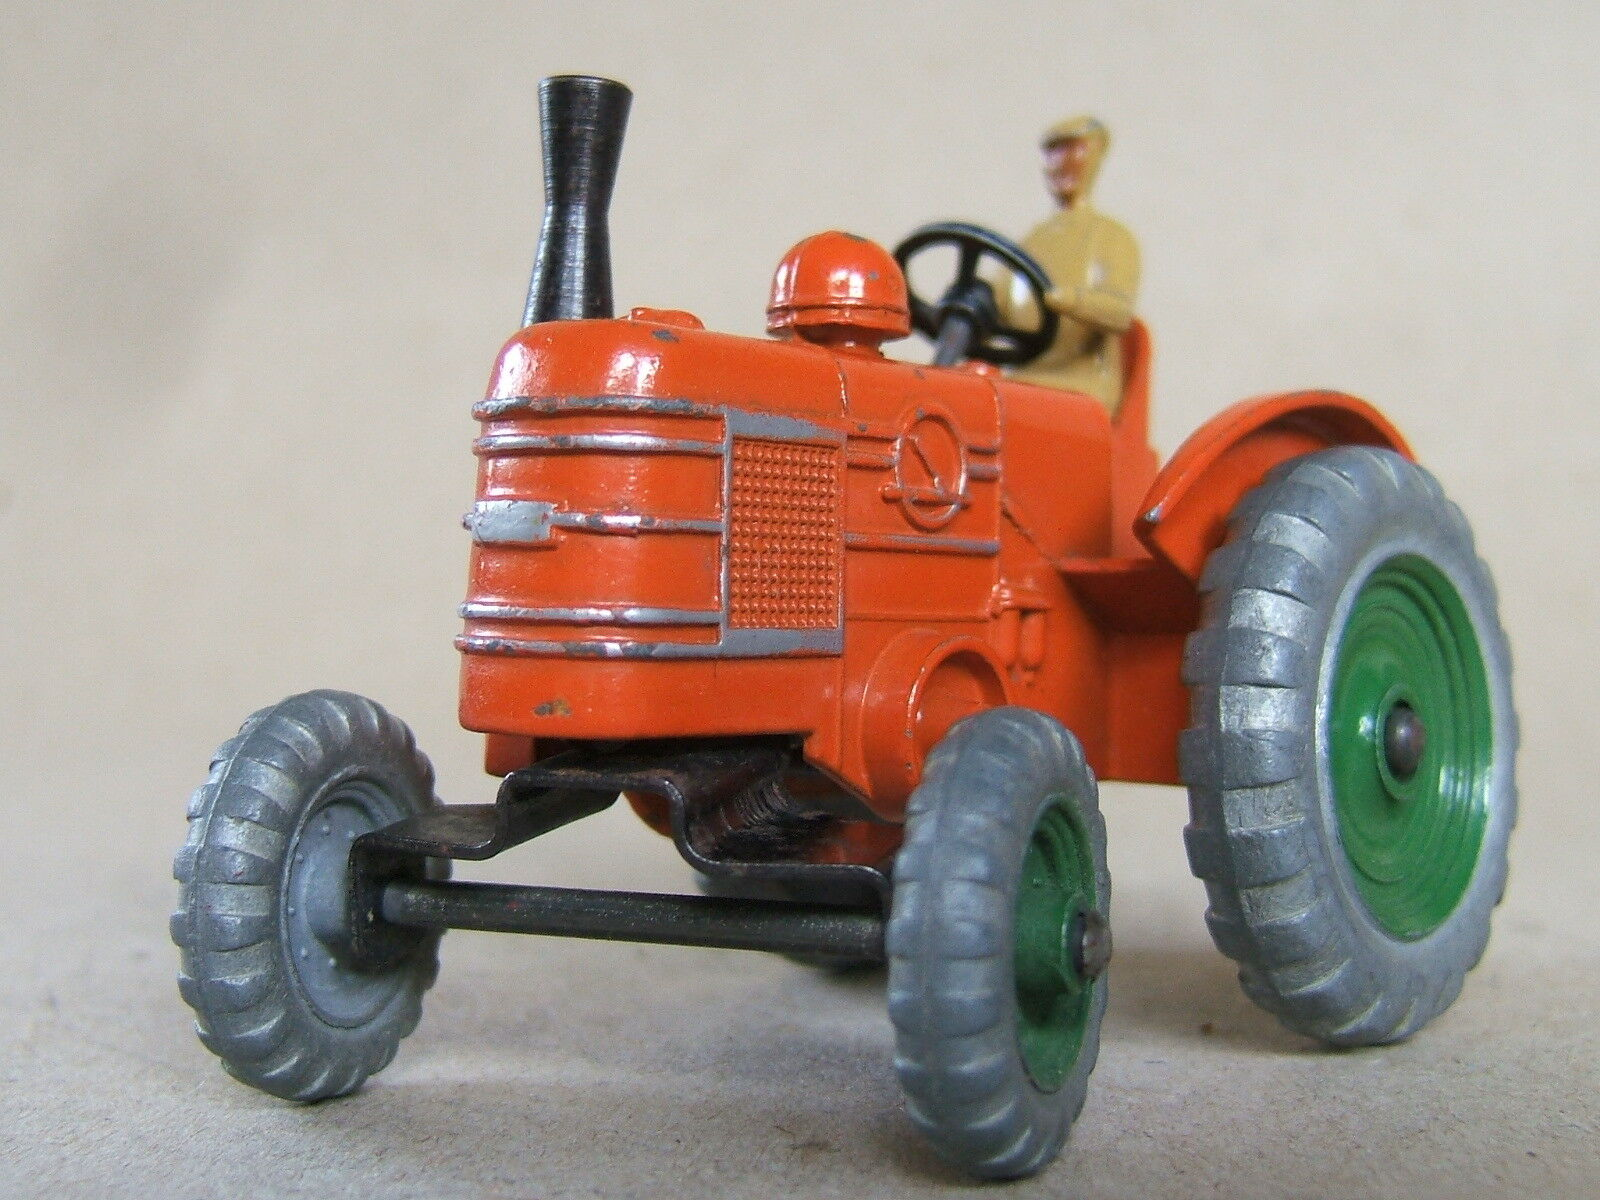 MECCANO DINKY TOYS FIELD MARSHALL TRACTEUR Nº 301 de 1954, jantes vert, RARE